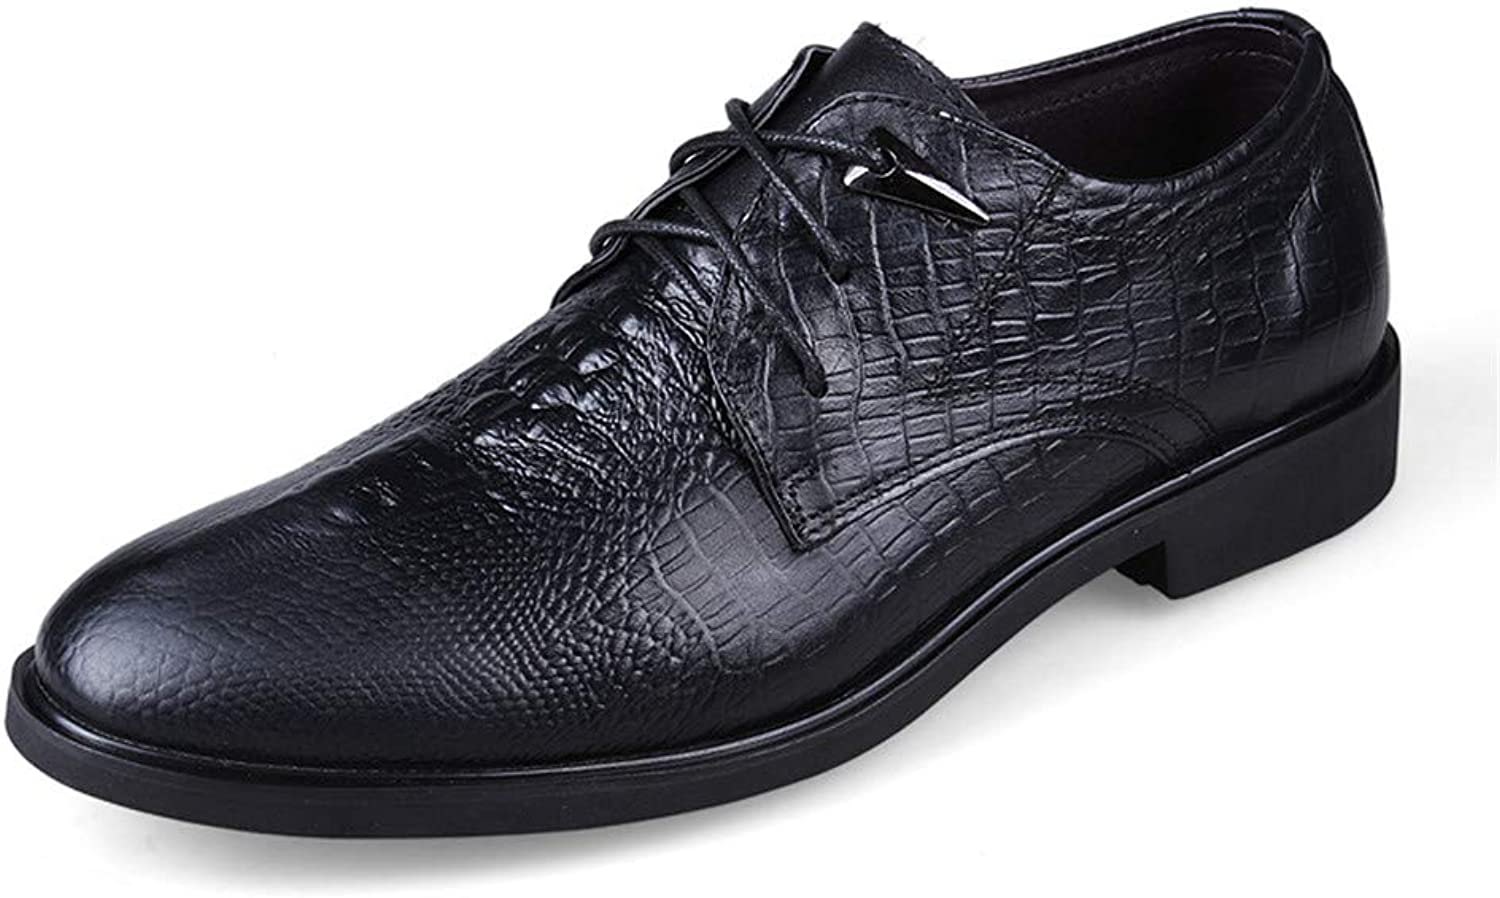 Men's Business Oxford shoes, Casual Simple Classic Crocodile Round Toe Formal shoes